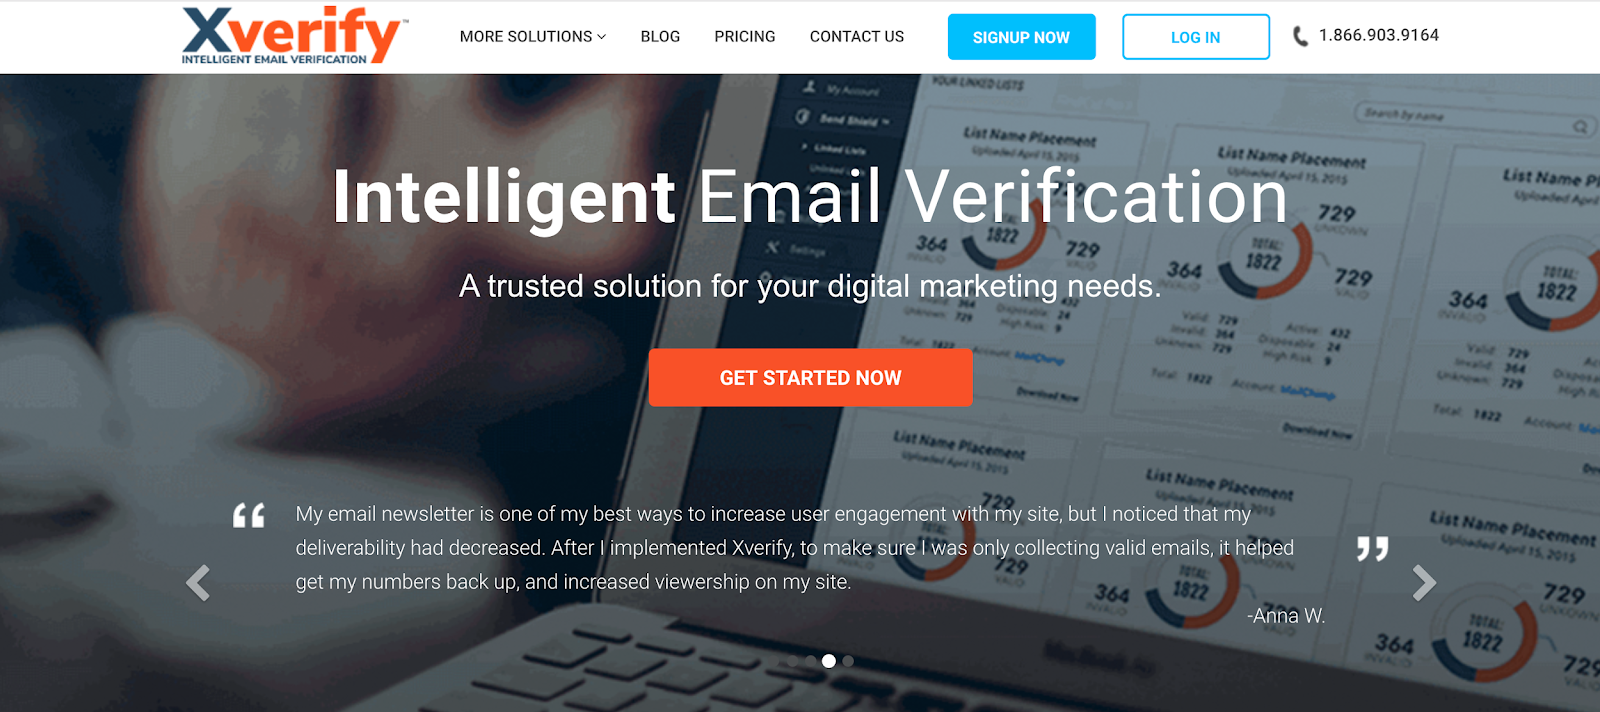 XVerify intelligent email verification